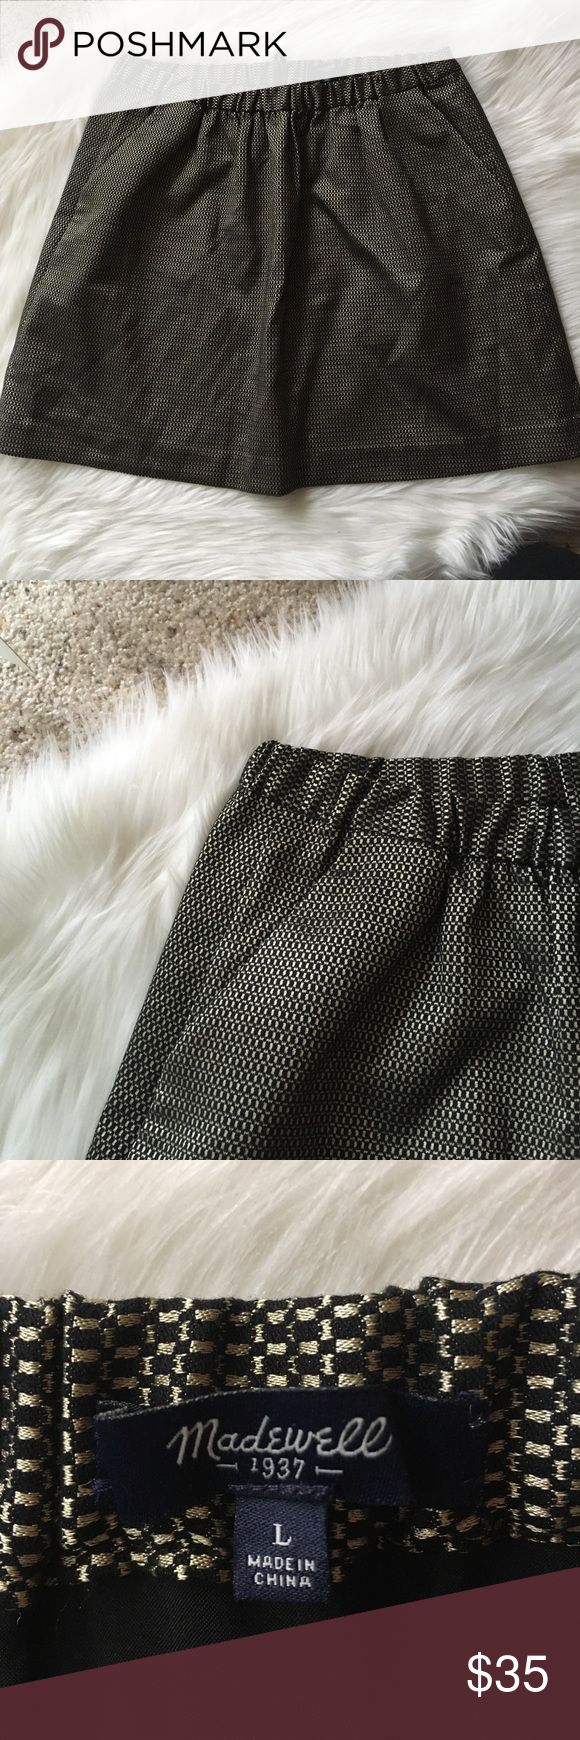 """Madewell Black and Gold Skirt w Pockets - Sz L This gorgeous shiny black and gold patterned skirt from Madewell in EUC is here just in time for the holidays! Pockets on either side, loose pleats, elastic cinched waist fit with exposed zipper in back for closure. Fully lined. See tag photo for material content. 17.5"""" long, 16"""" across waist. Questions welcome! Madewell Skirts Mini"""